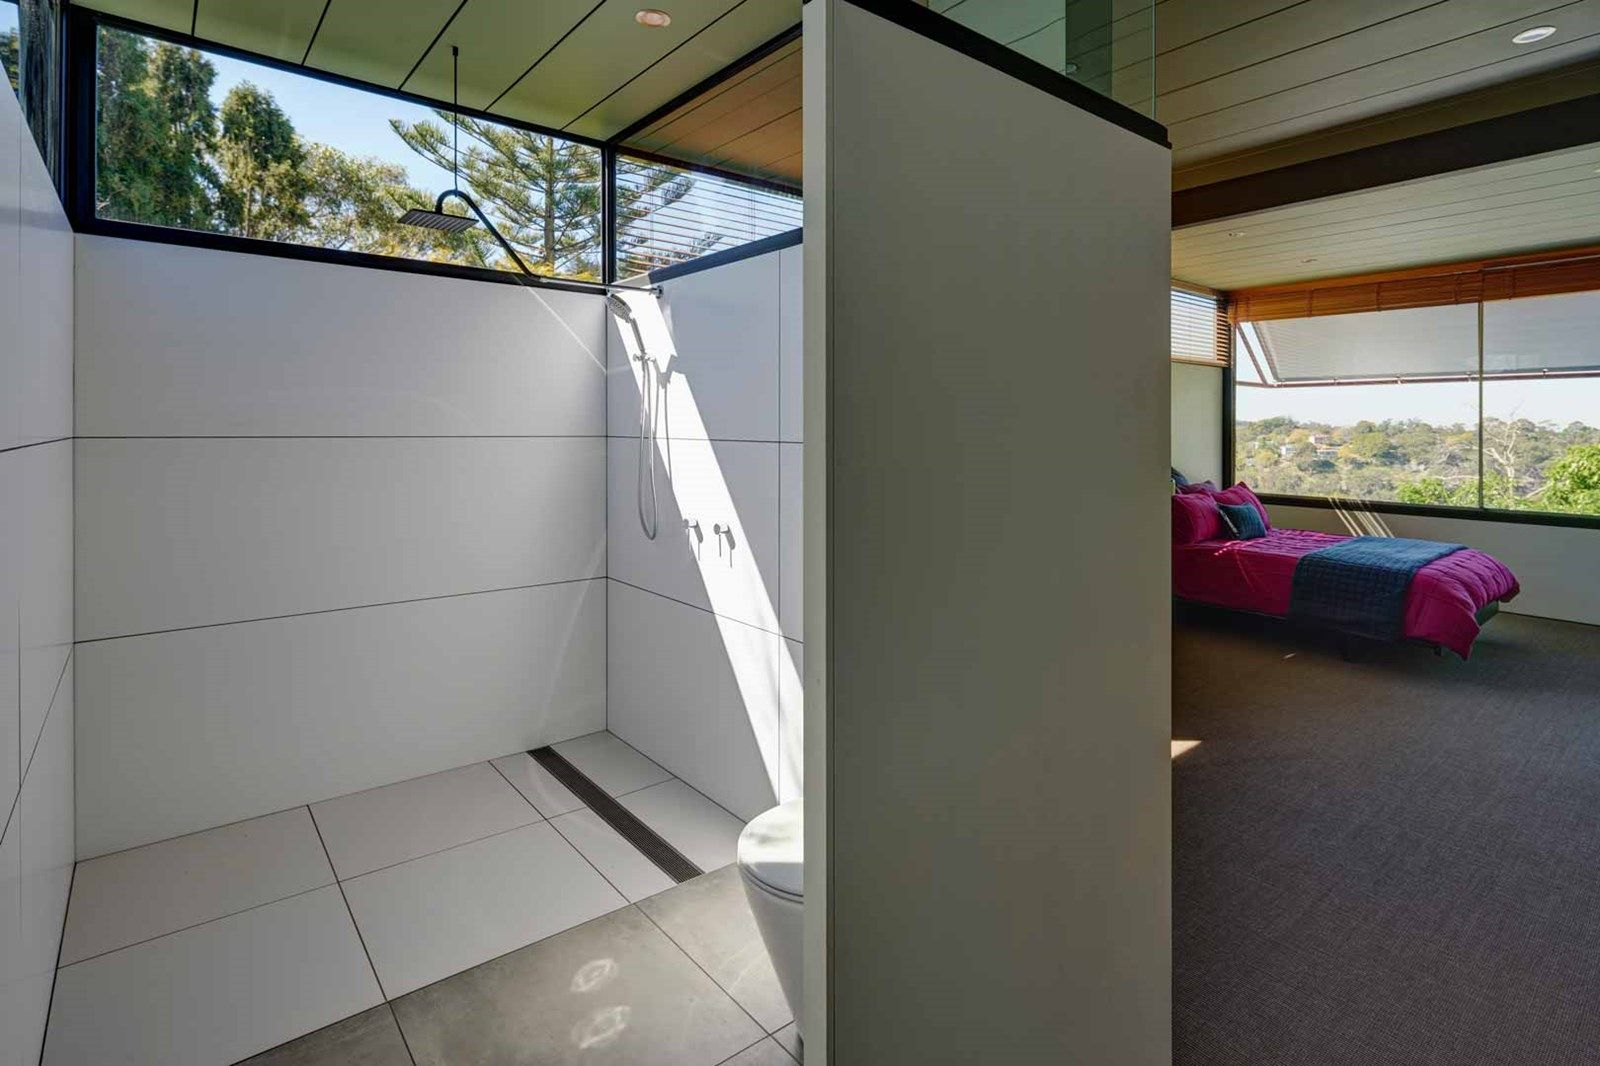 Fombertaux House 23 Karoo Ave East Lindfield NSW Modernist